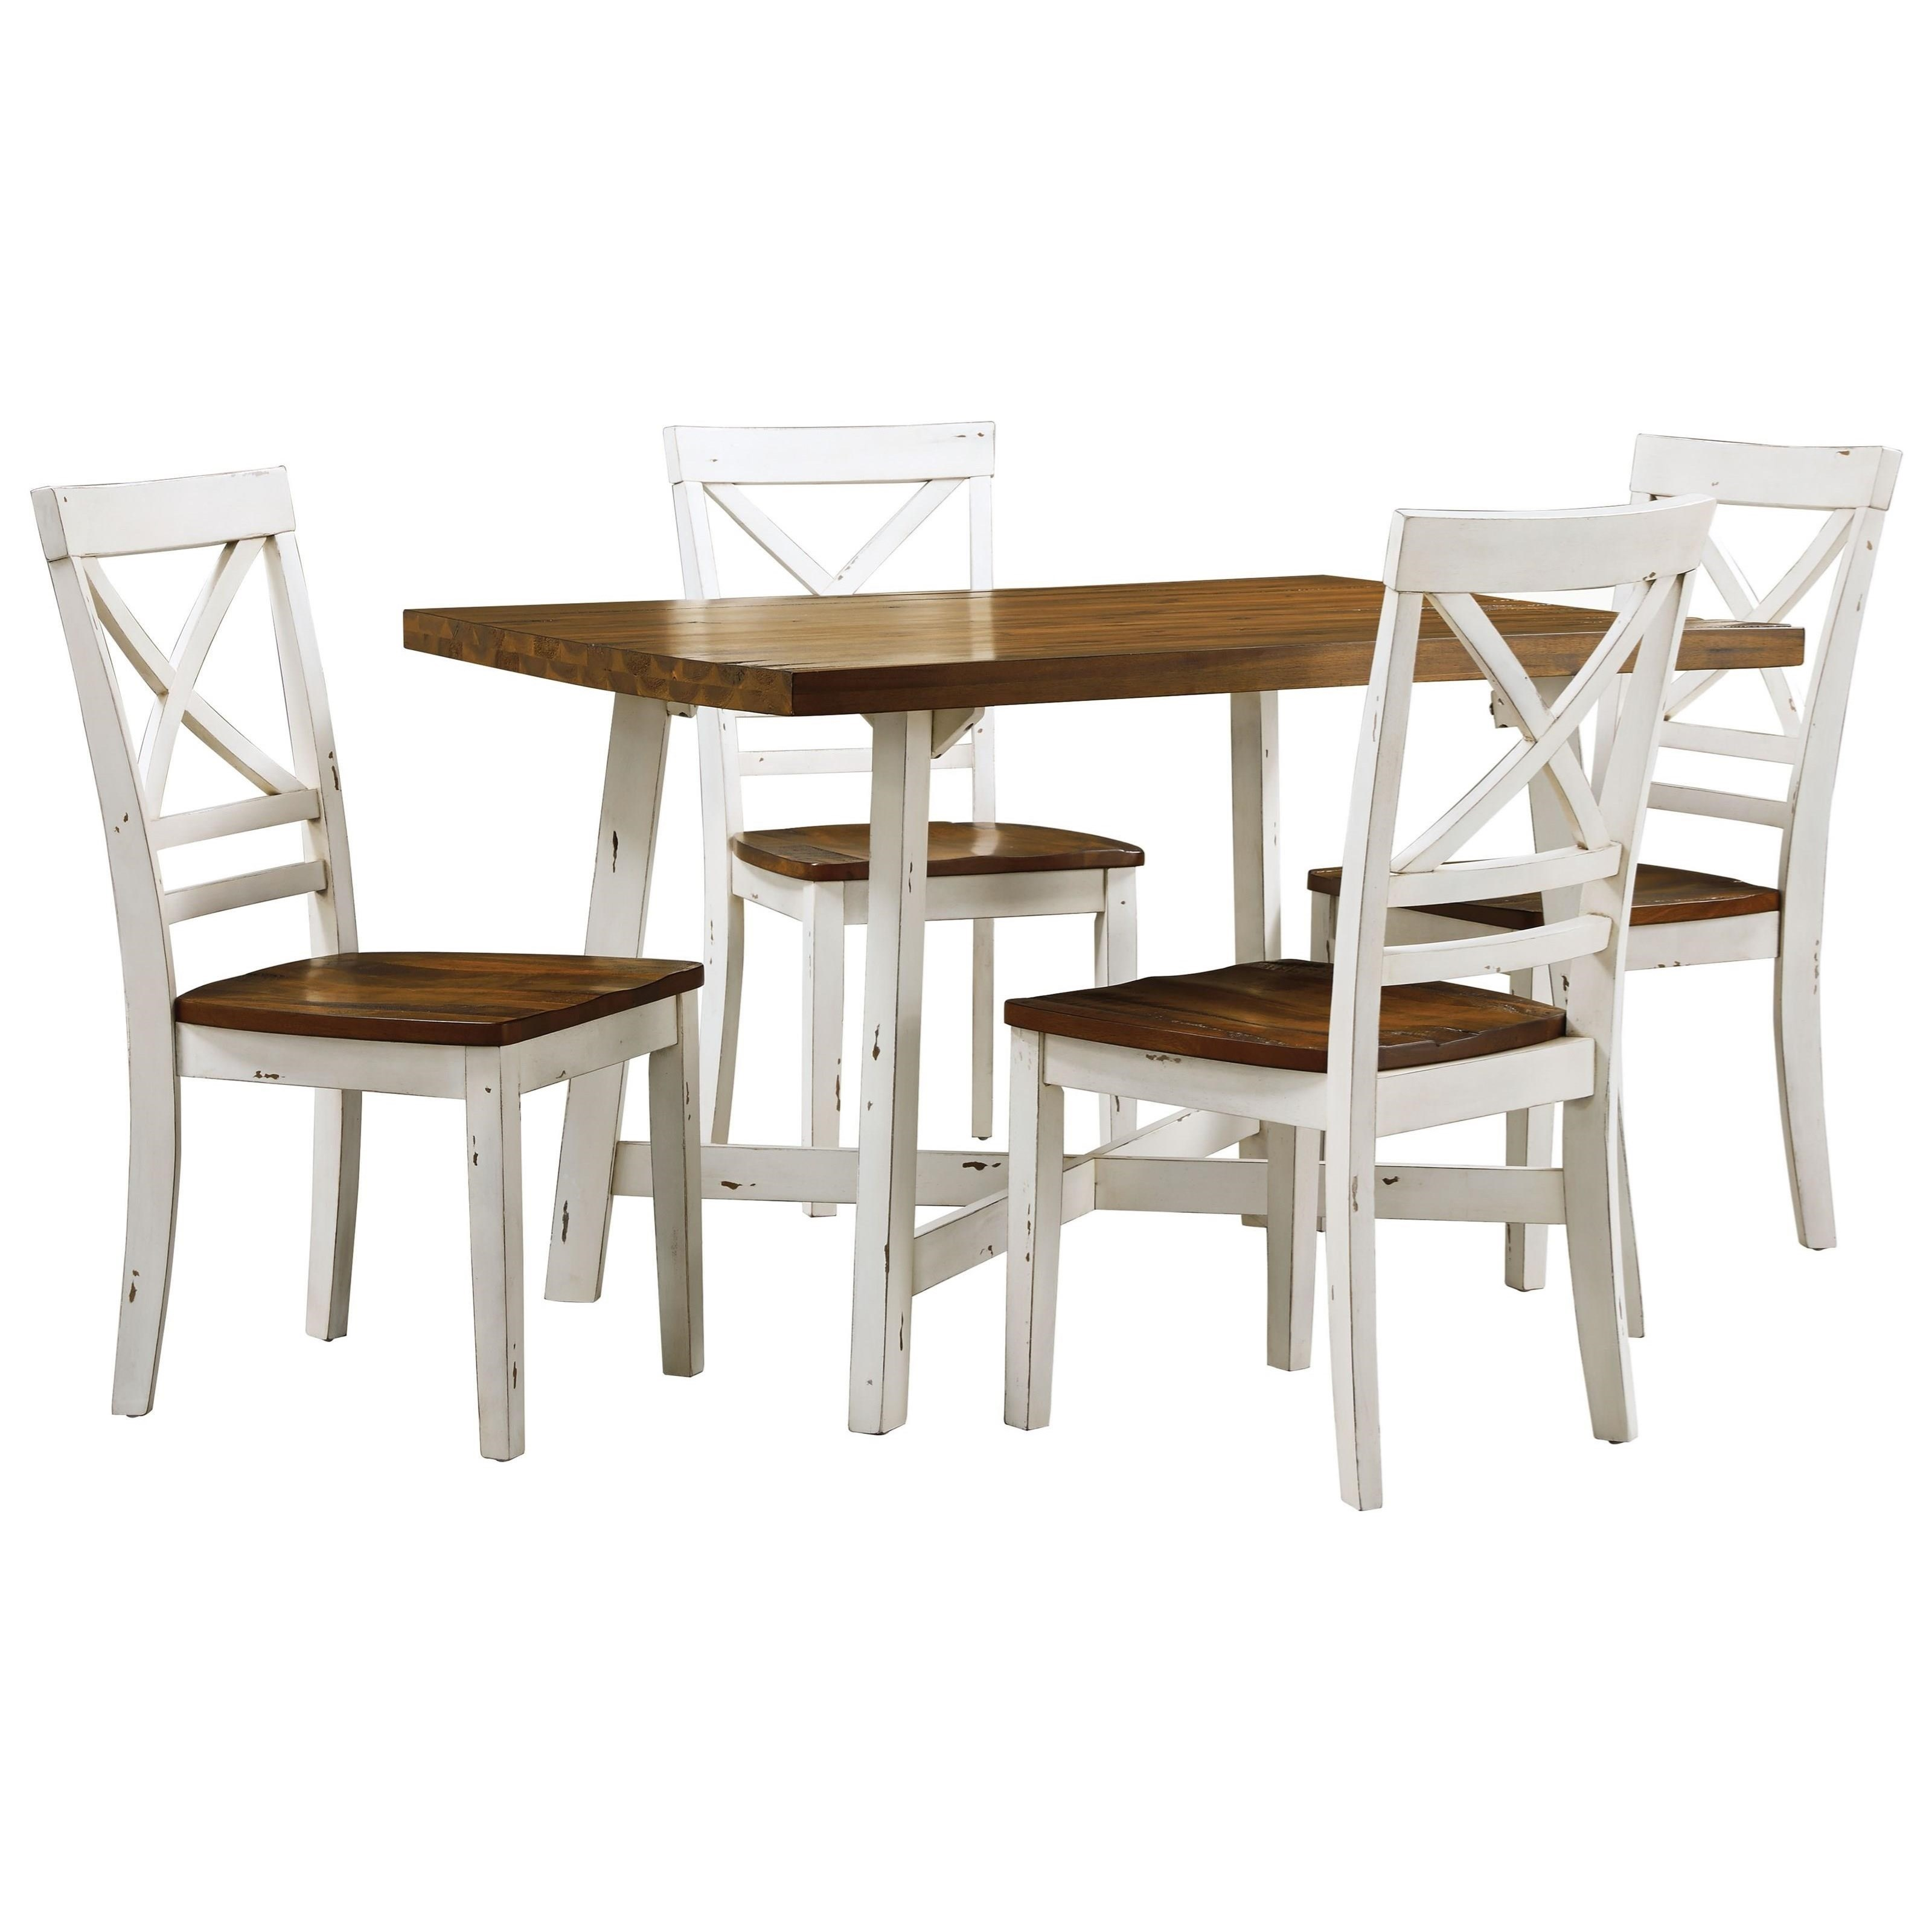 Standard furniture amelia 19082 two tone table and chair for Table and chair set